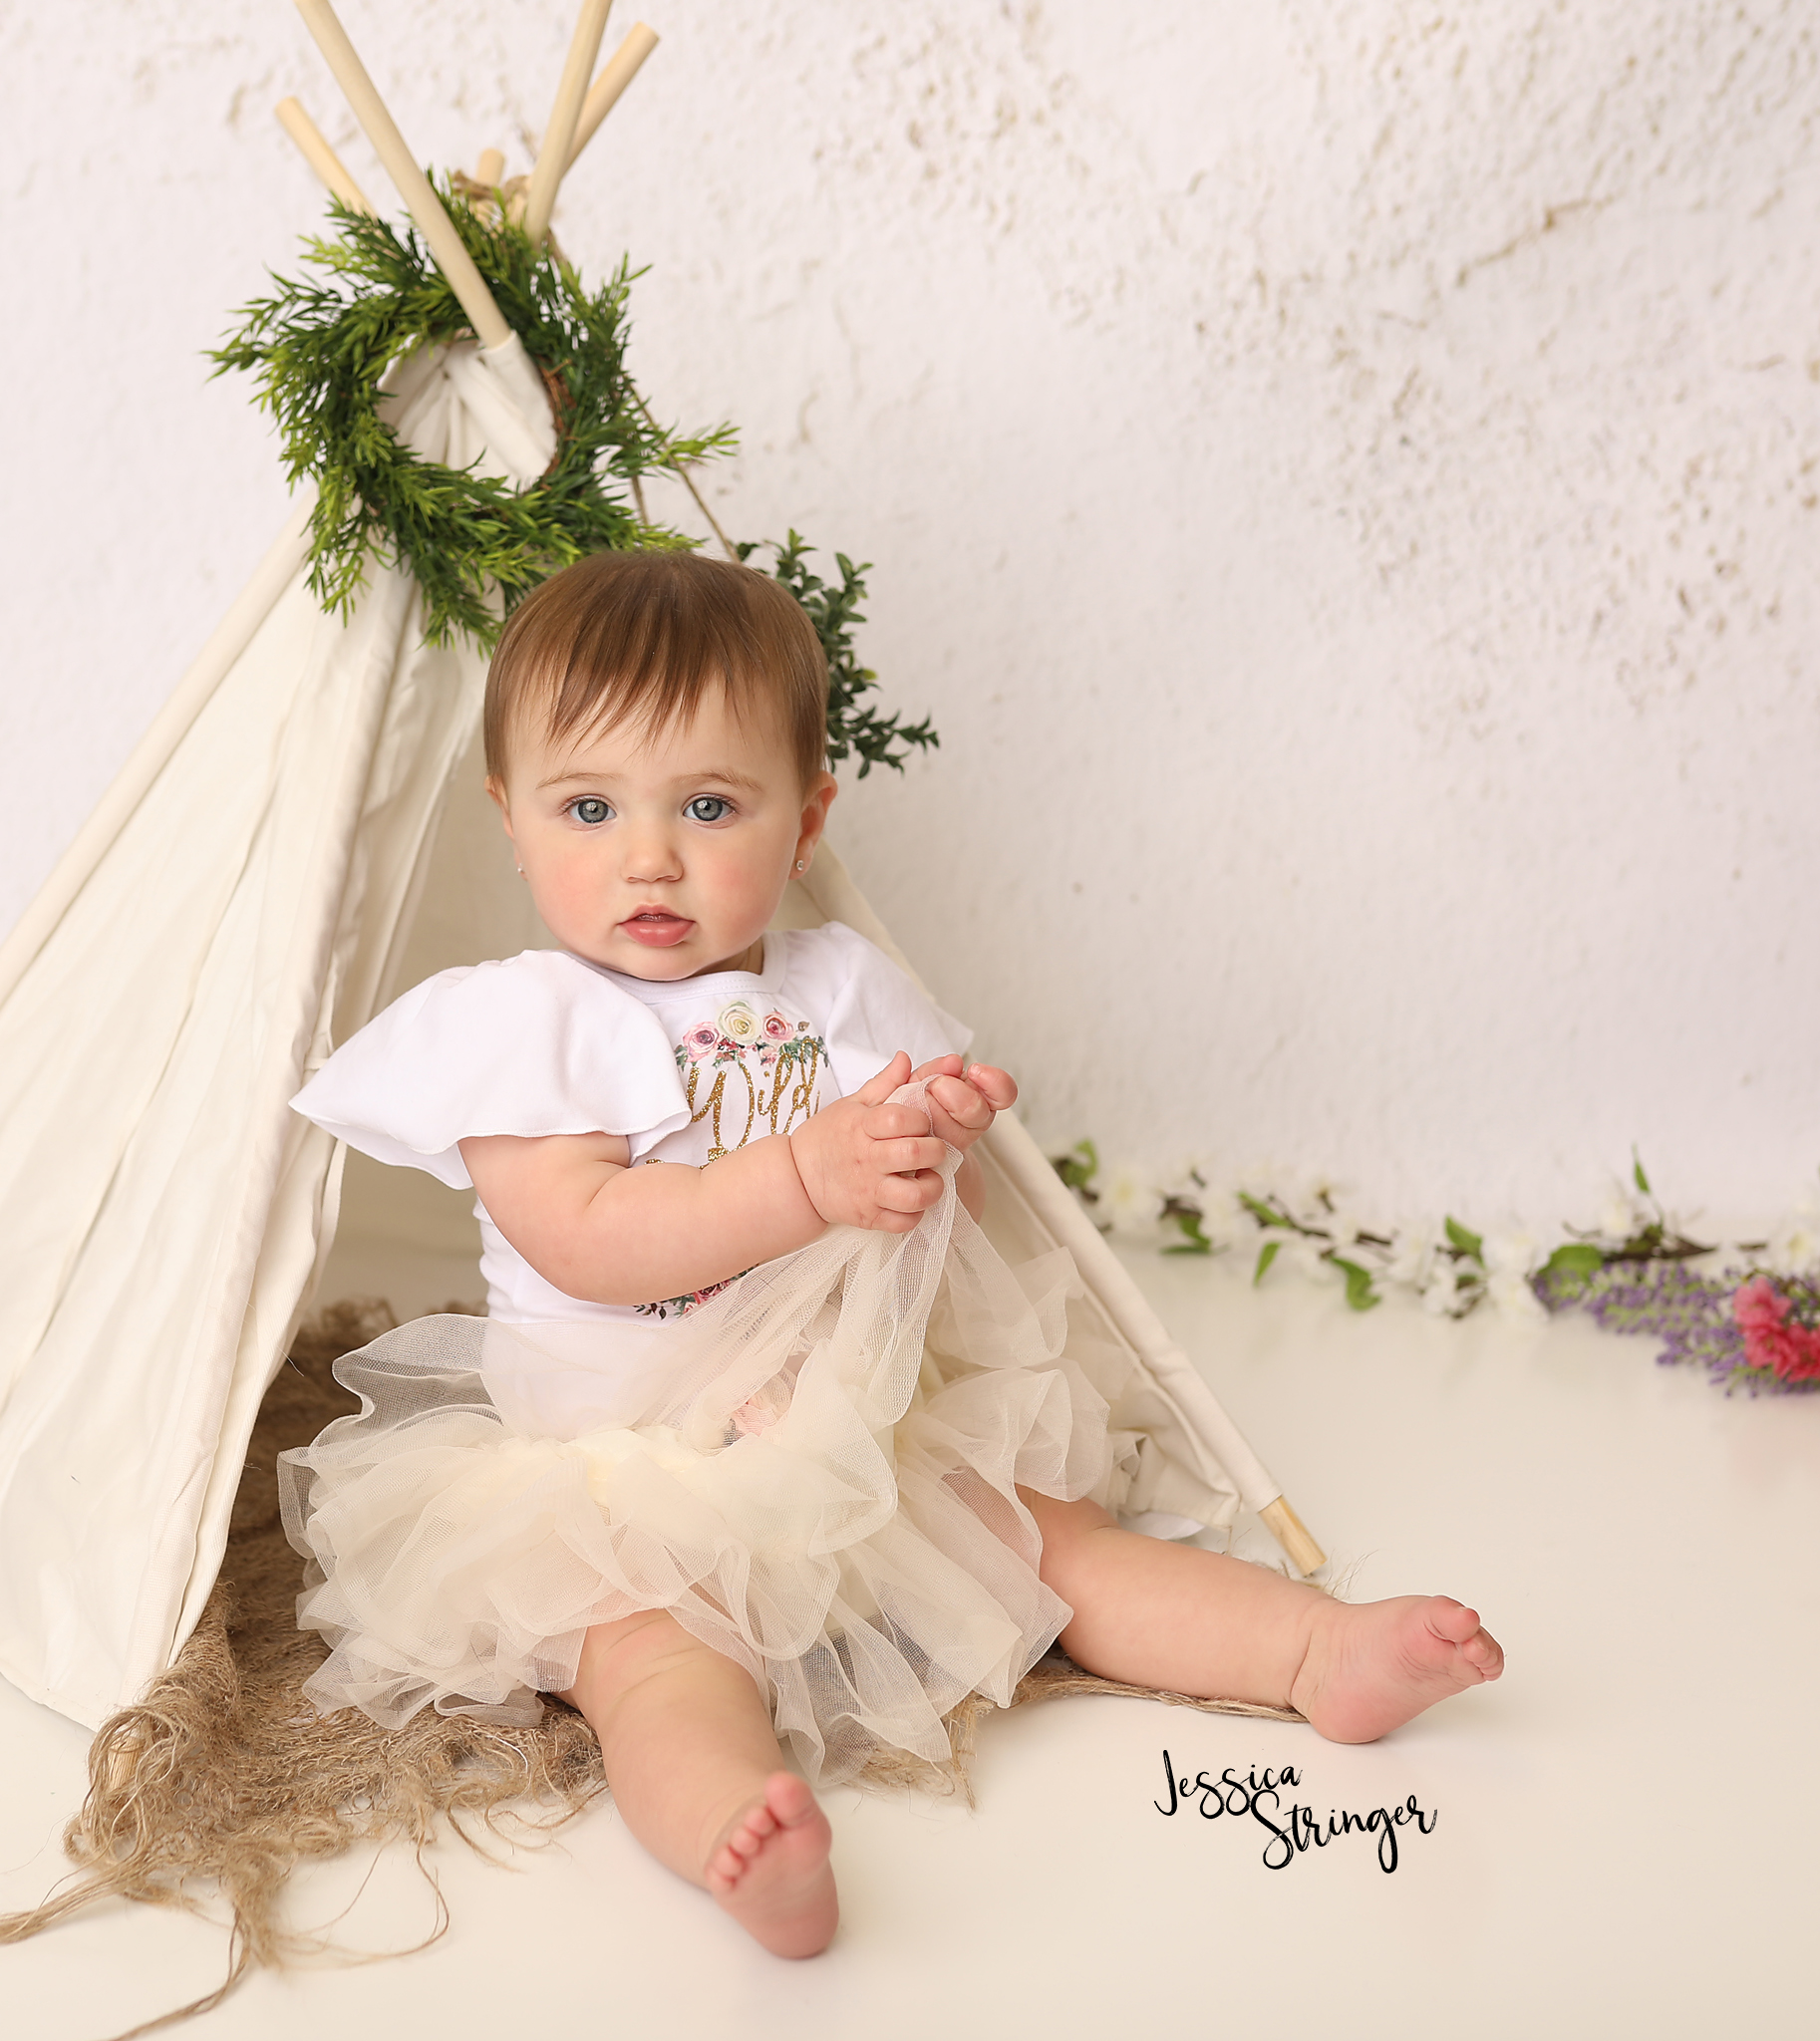 https://www.jessicastringerphotography.com/baby-first-birthday/